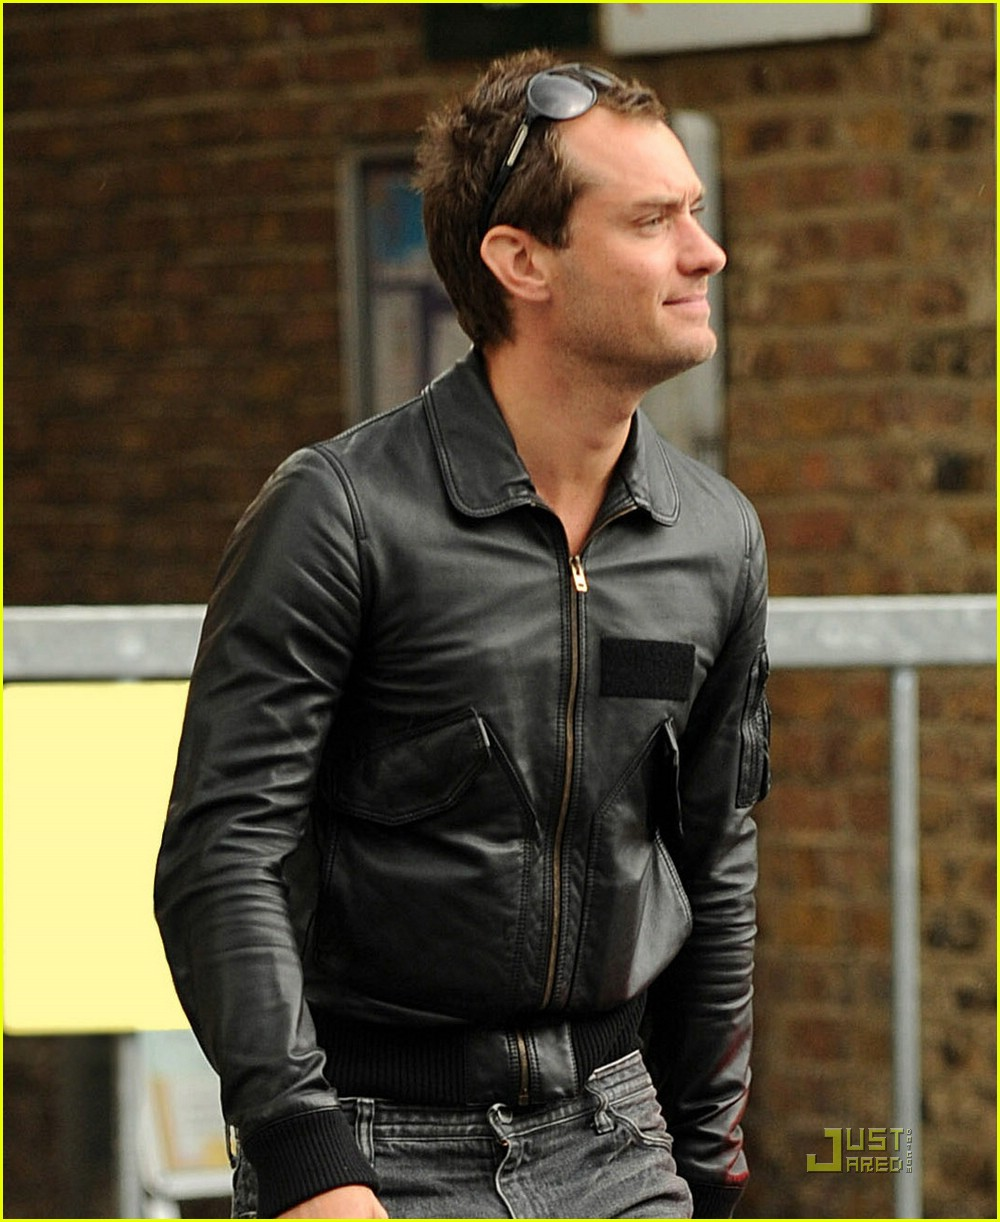 Leather jacket in summer - Jude Law Lives In Nike Town Photo 1187501 Jude Law Pictures Just Jared